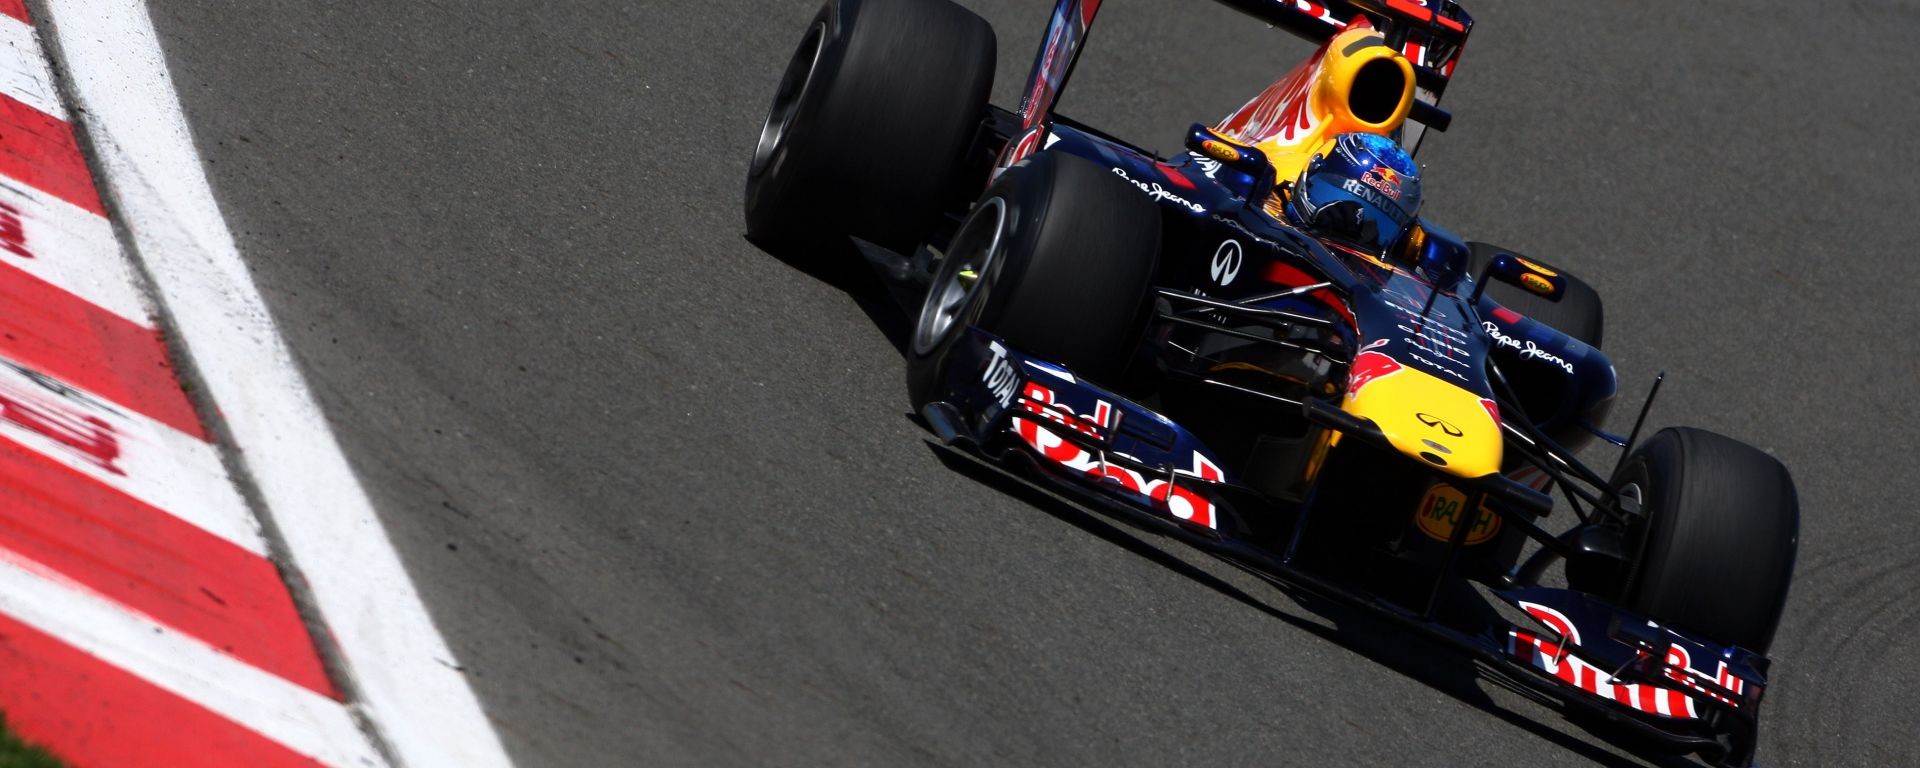 F1 GP Turchia 2011, Istanbul: Sebastian Vettel (Red Bull Racing)